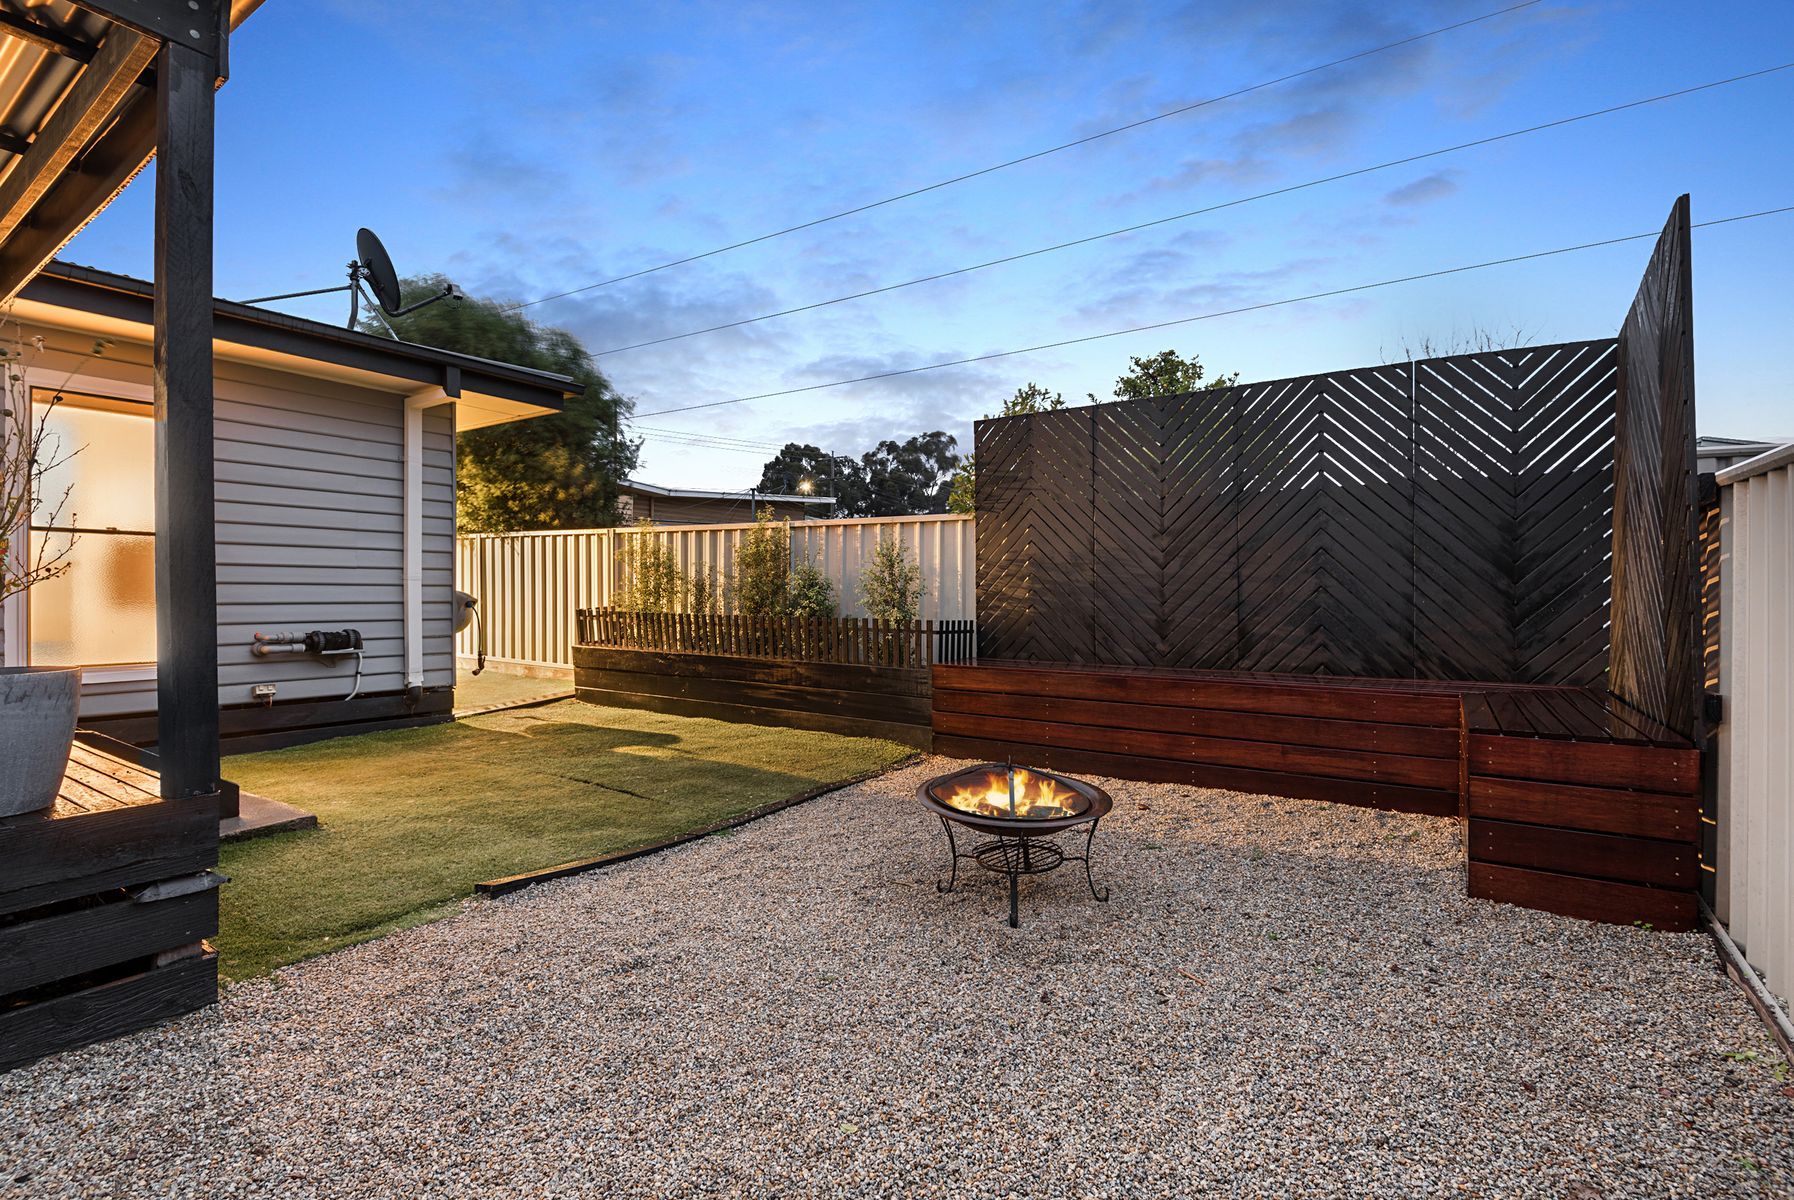 1A Whittaker Street, Quarry Hill, VIC 3550